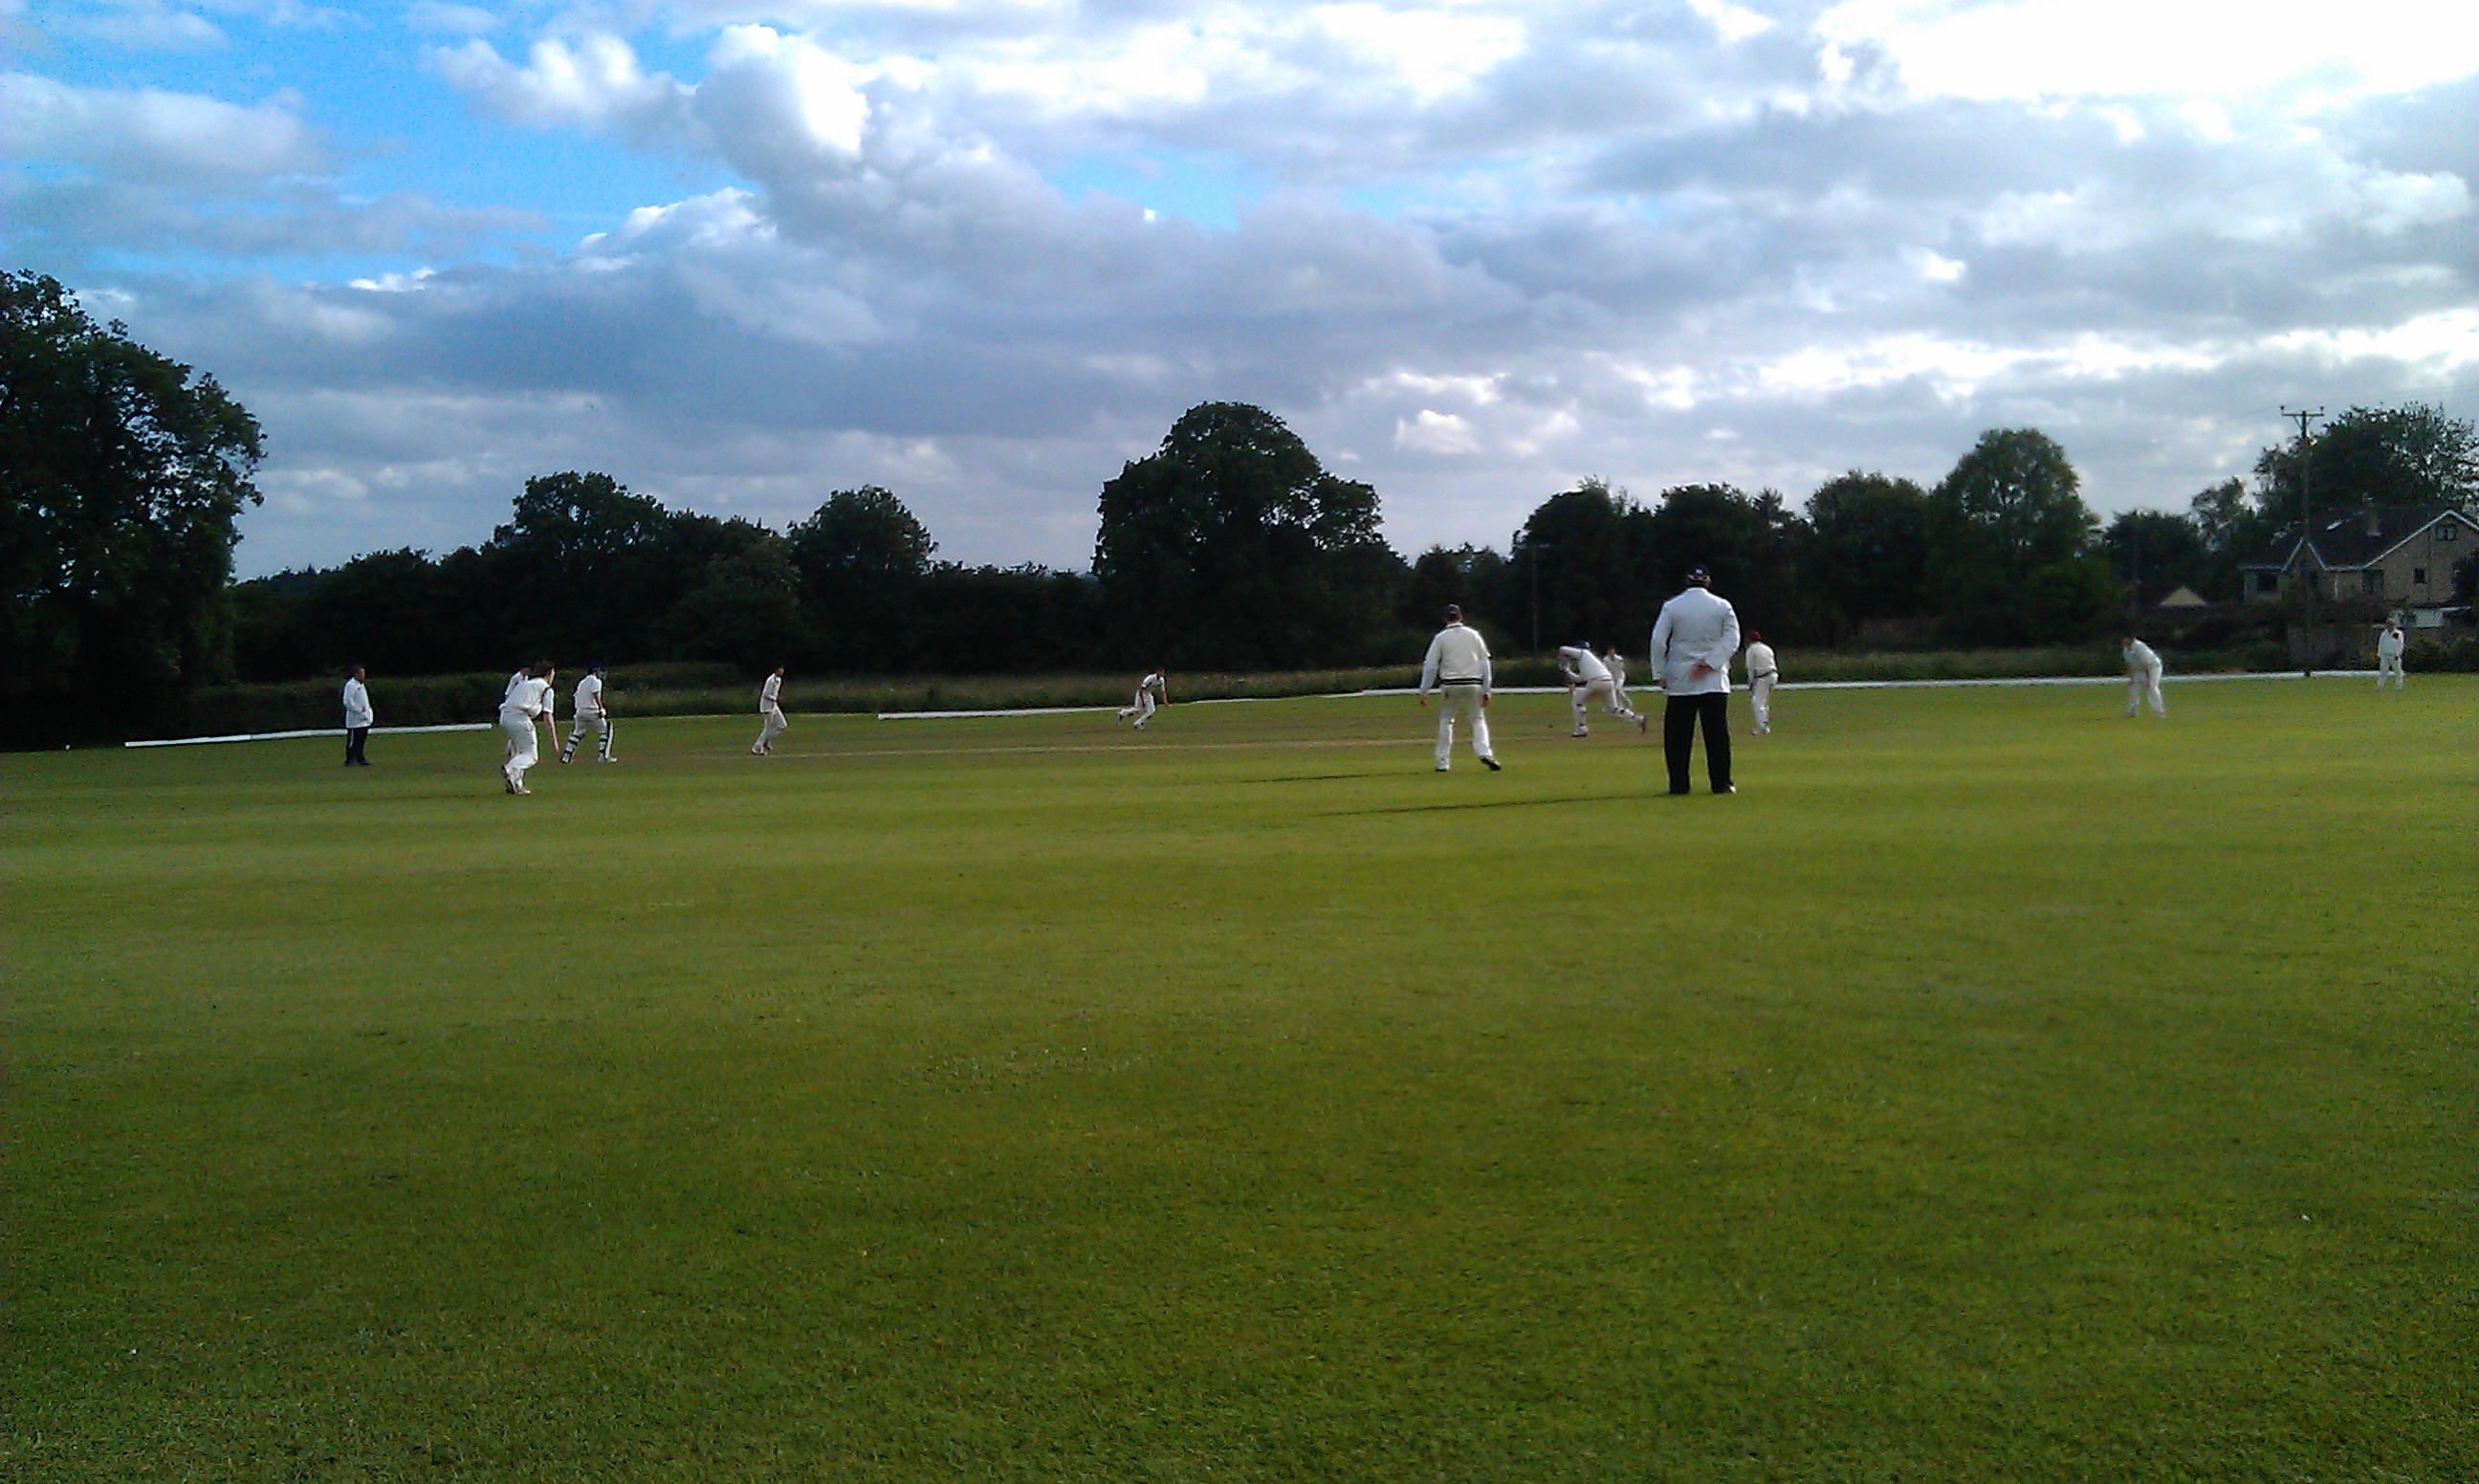 Kilve 1st XI chase well on the hottest day of the year